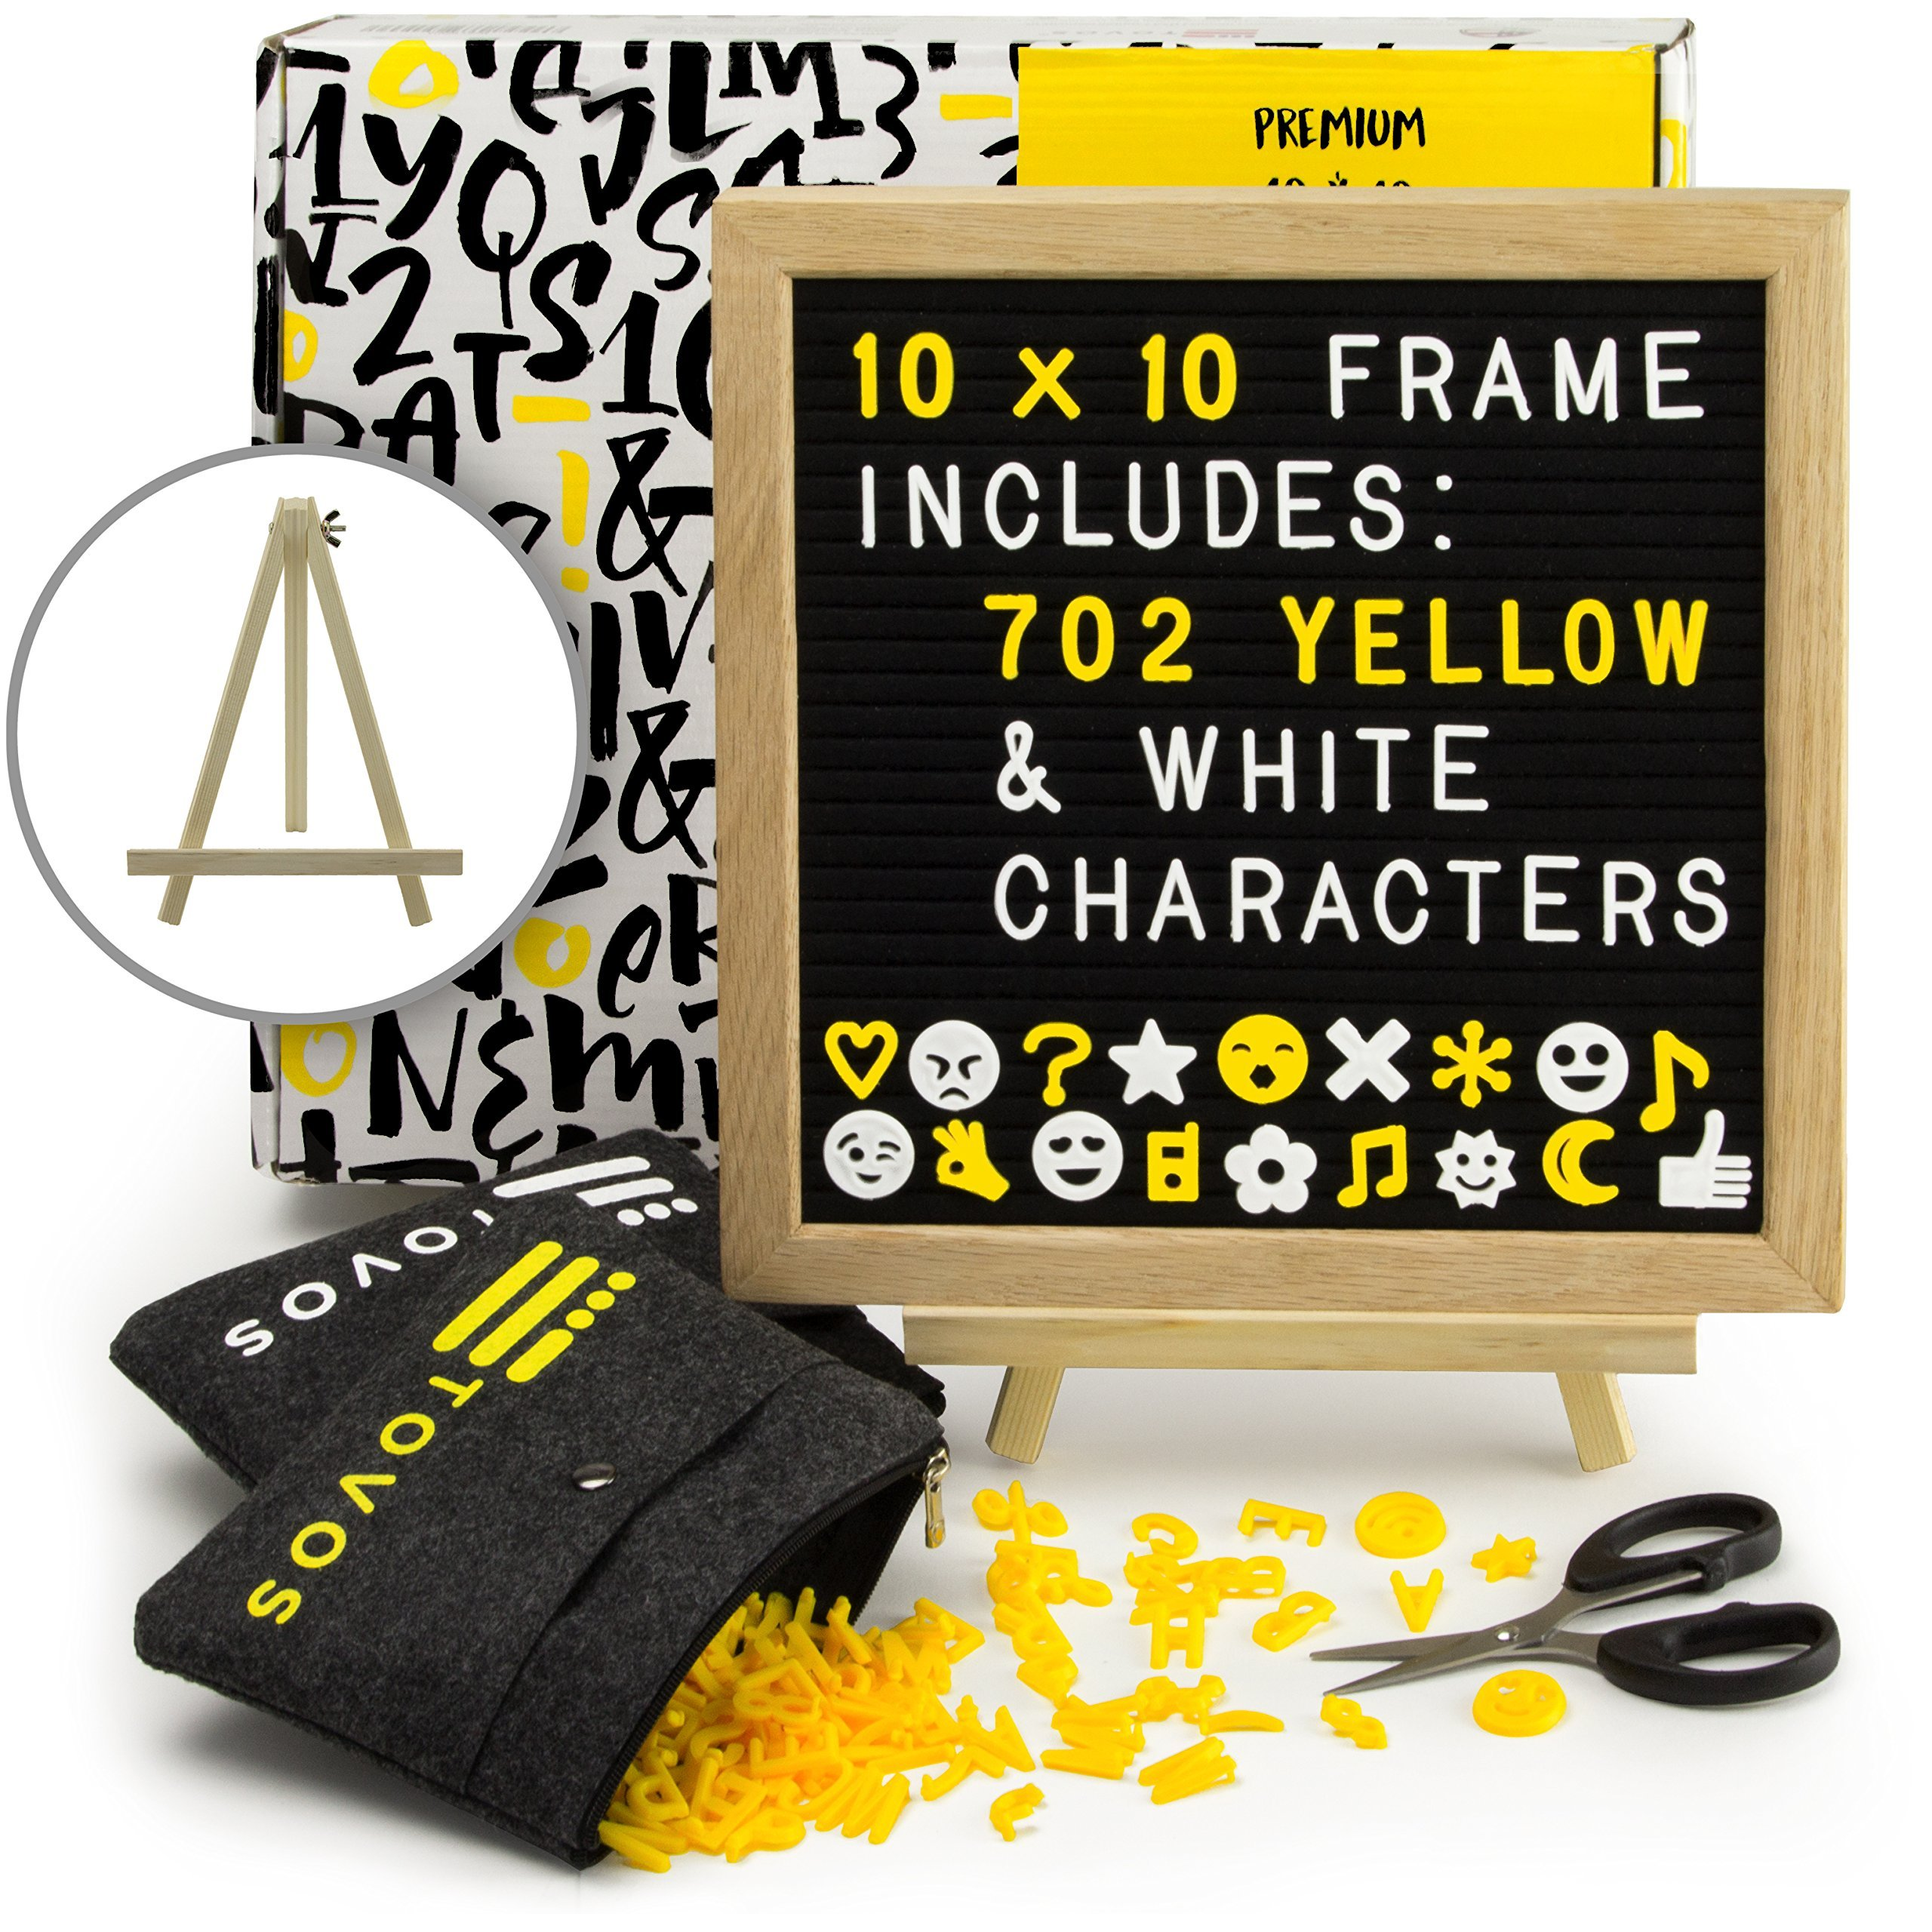 Felt Letter Board Set: Black Message Board in Solid Oak Frame, 10'' x 10'' with 702 Letters (362 Bright Yellow & 340 White), Adjustable Wood Easel Stand, Precision Scissors & 2 Zippered Storage Pouches